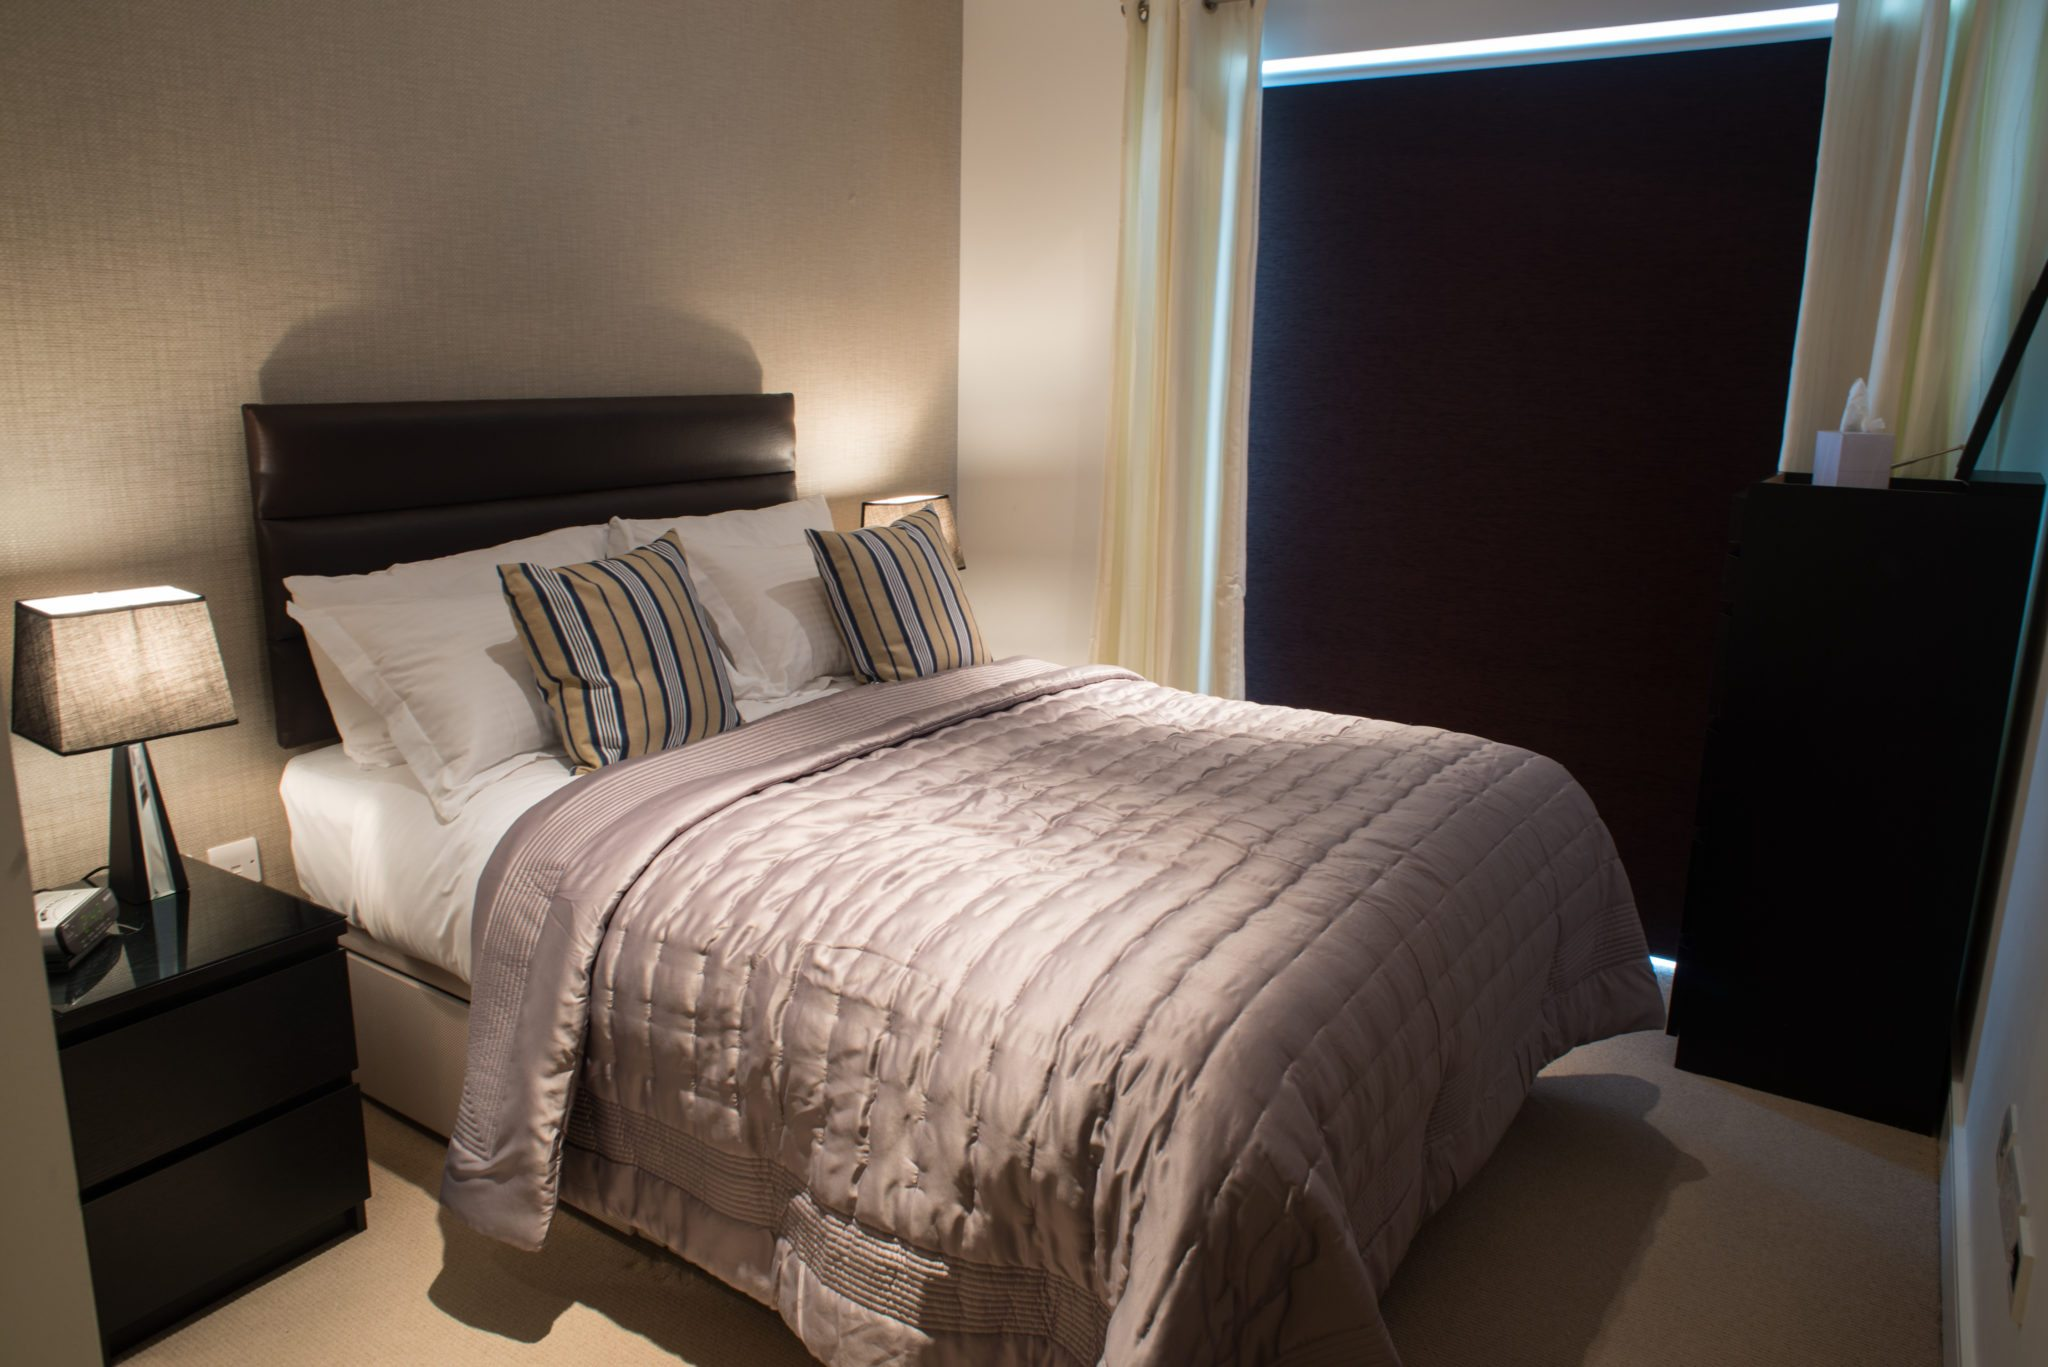 Serviced-Apartments-Ealing-|-Corporate-Accommodation-West-London-|-Short-Lets-|-Corporate-Housing-|-Relocation-|-Award-Winning-&-Quality-Accredited-BOOK-NOW---Urban-Stay